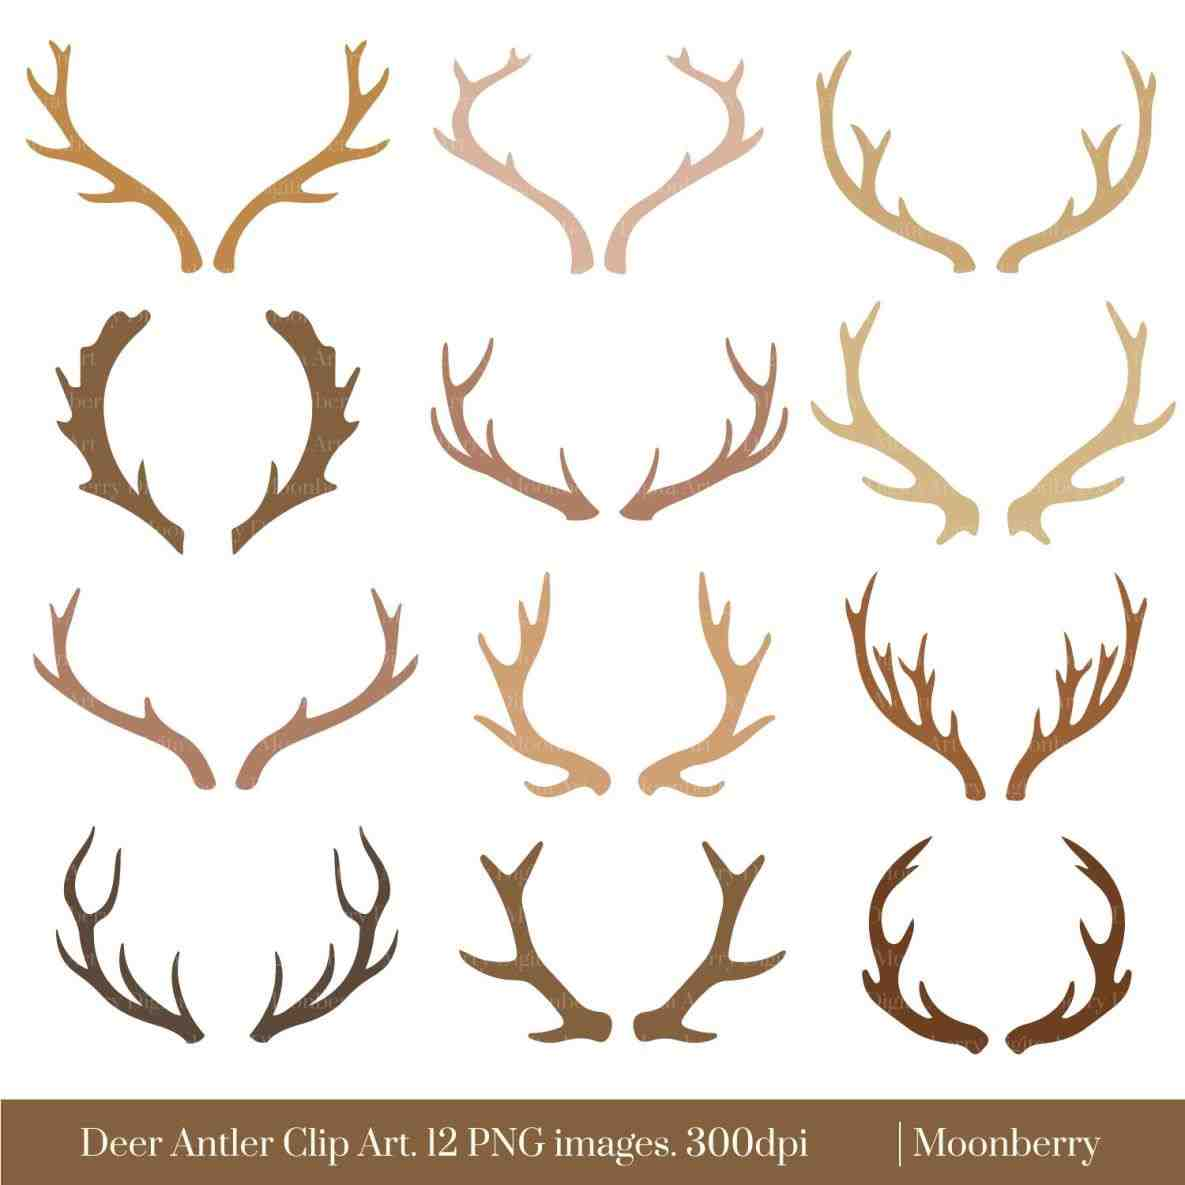 Antlers clipart reindeer ear. Tesa template for head